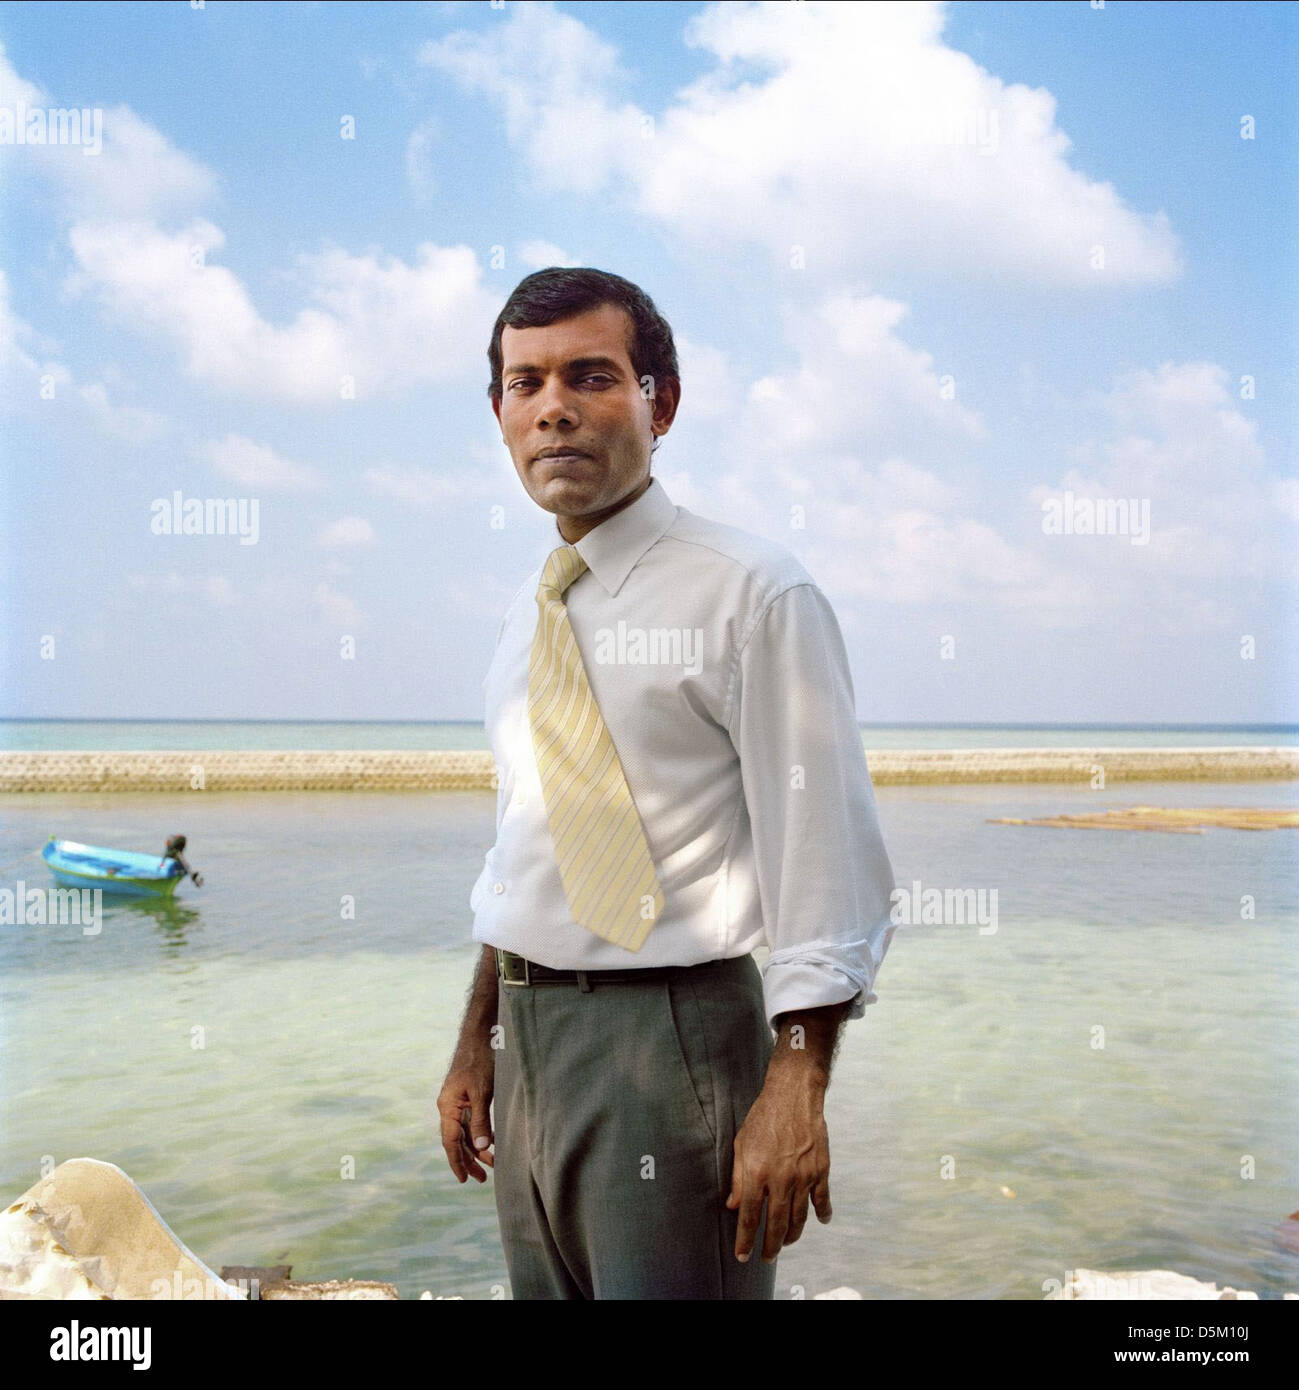 MOHAMED NASHEED THE ISLAND PRESIDENT (2011) - Stock Image